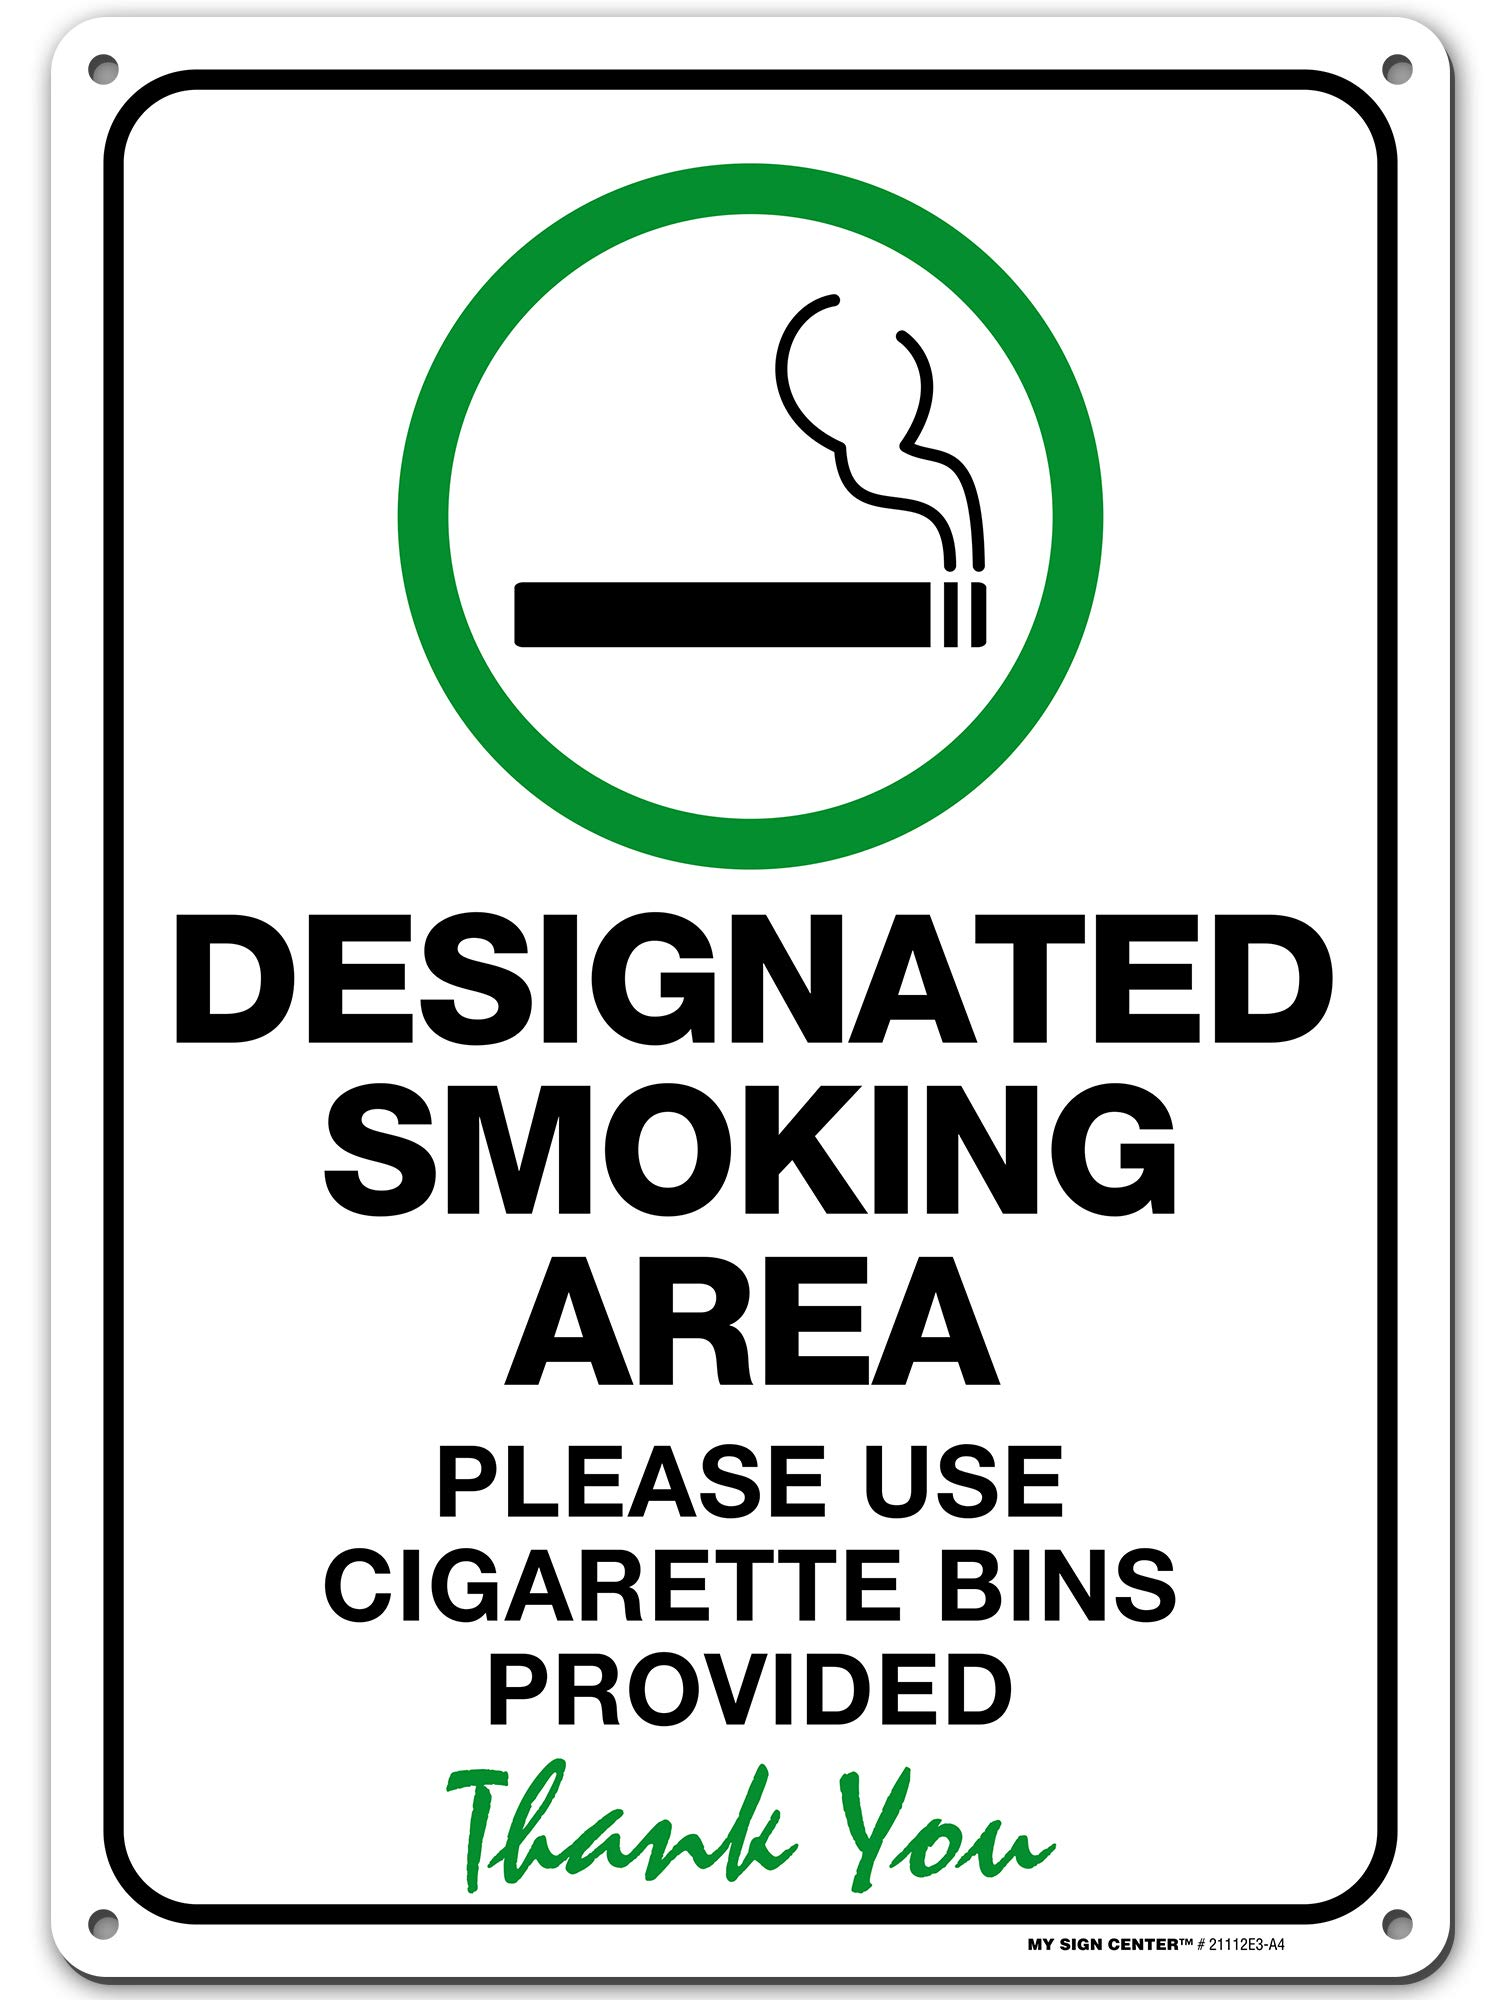 Designated Smoking Area Sign Please Use Cigarette Bins Provided Outdoor Rust Free Metal 10 X 14 By My Sign Center 21112e3 A4 Buy Online In Colombia My Sign Center Products In,Nursing School T Shirt Designs